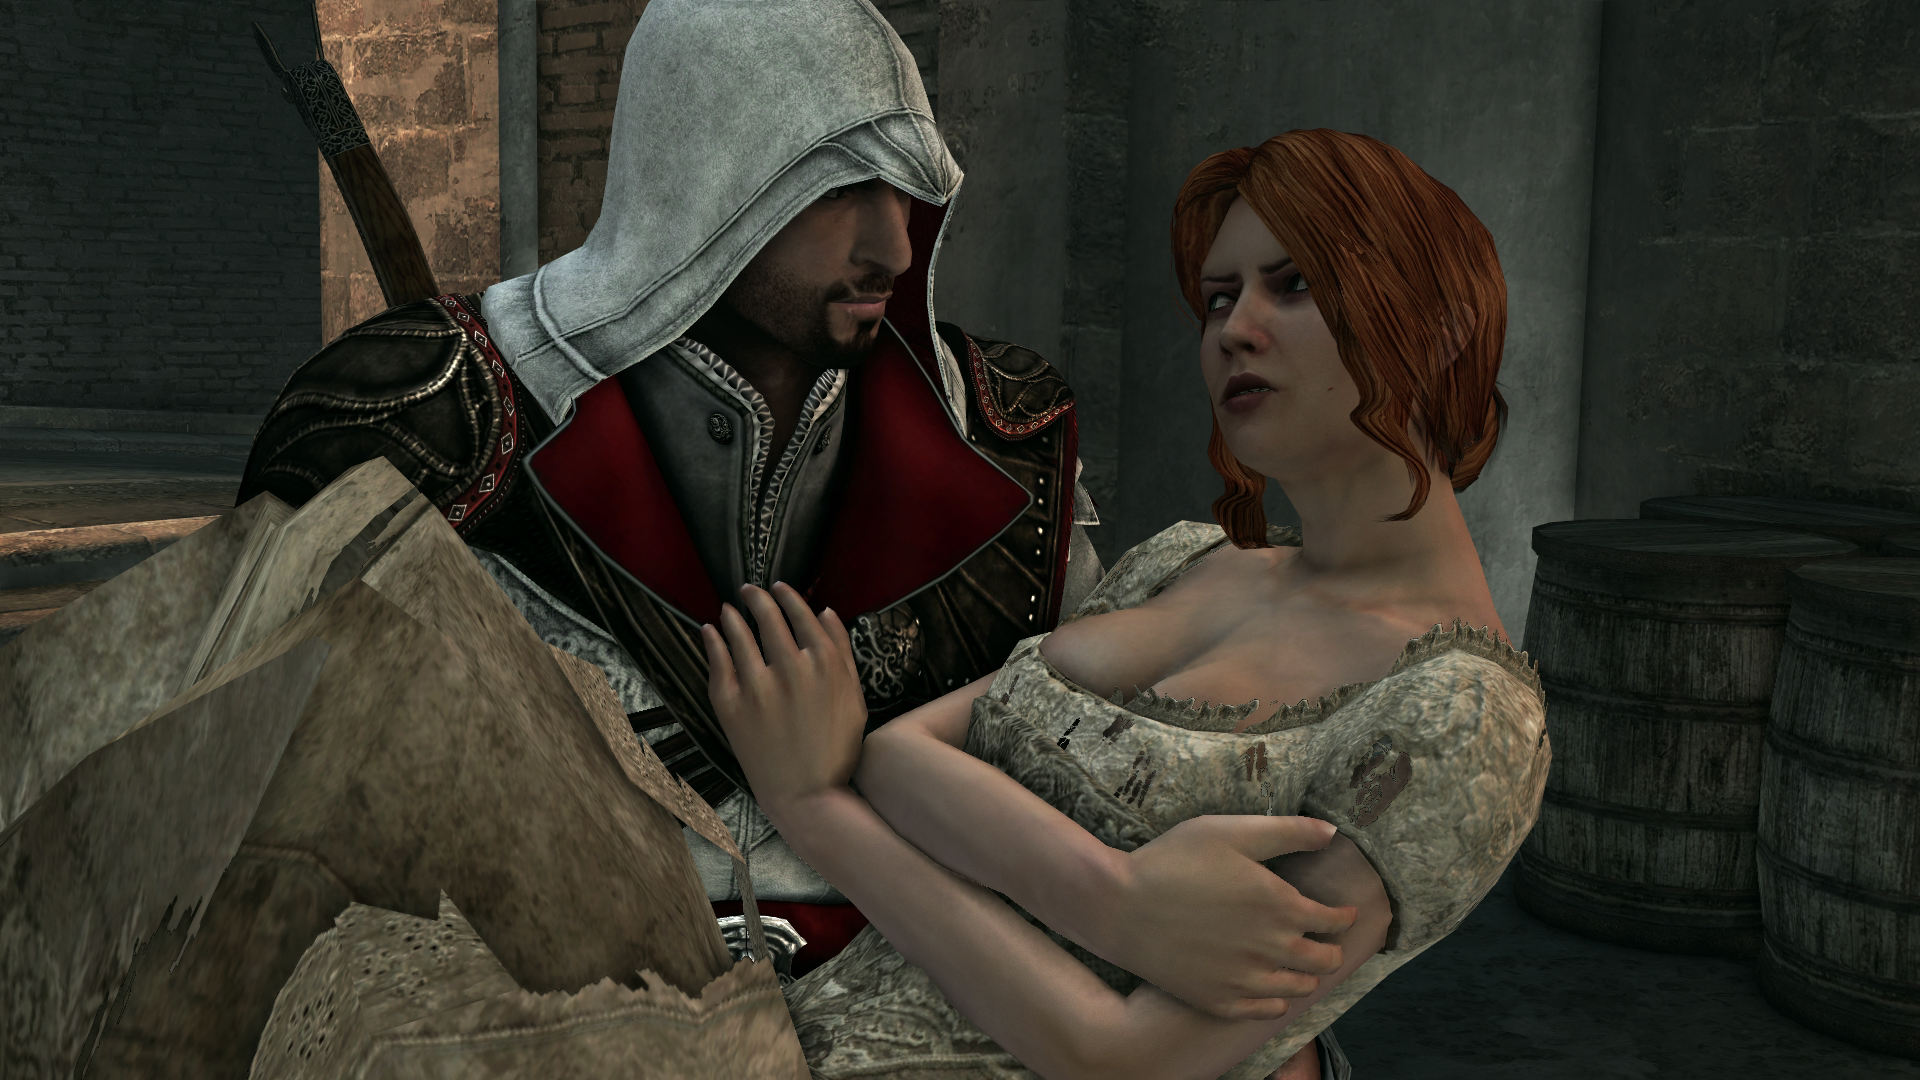 Ezio sex with christina hentai images